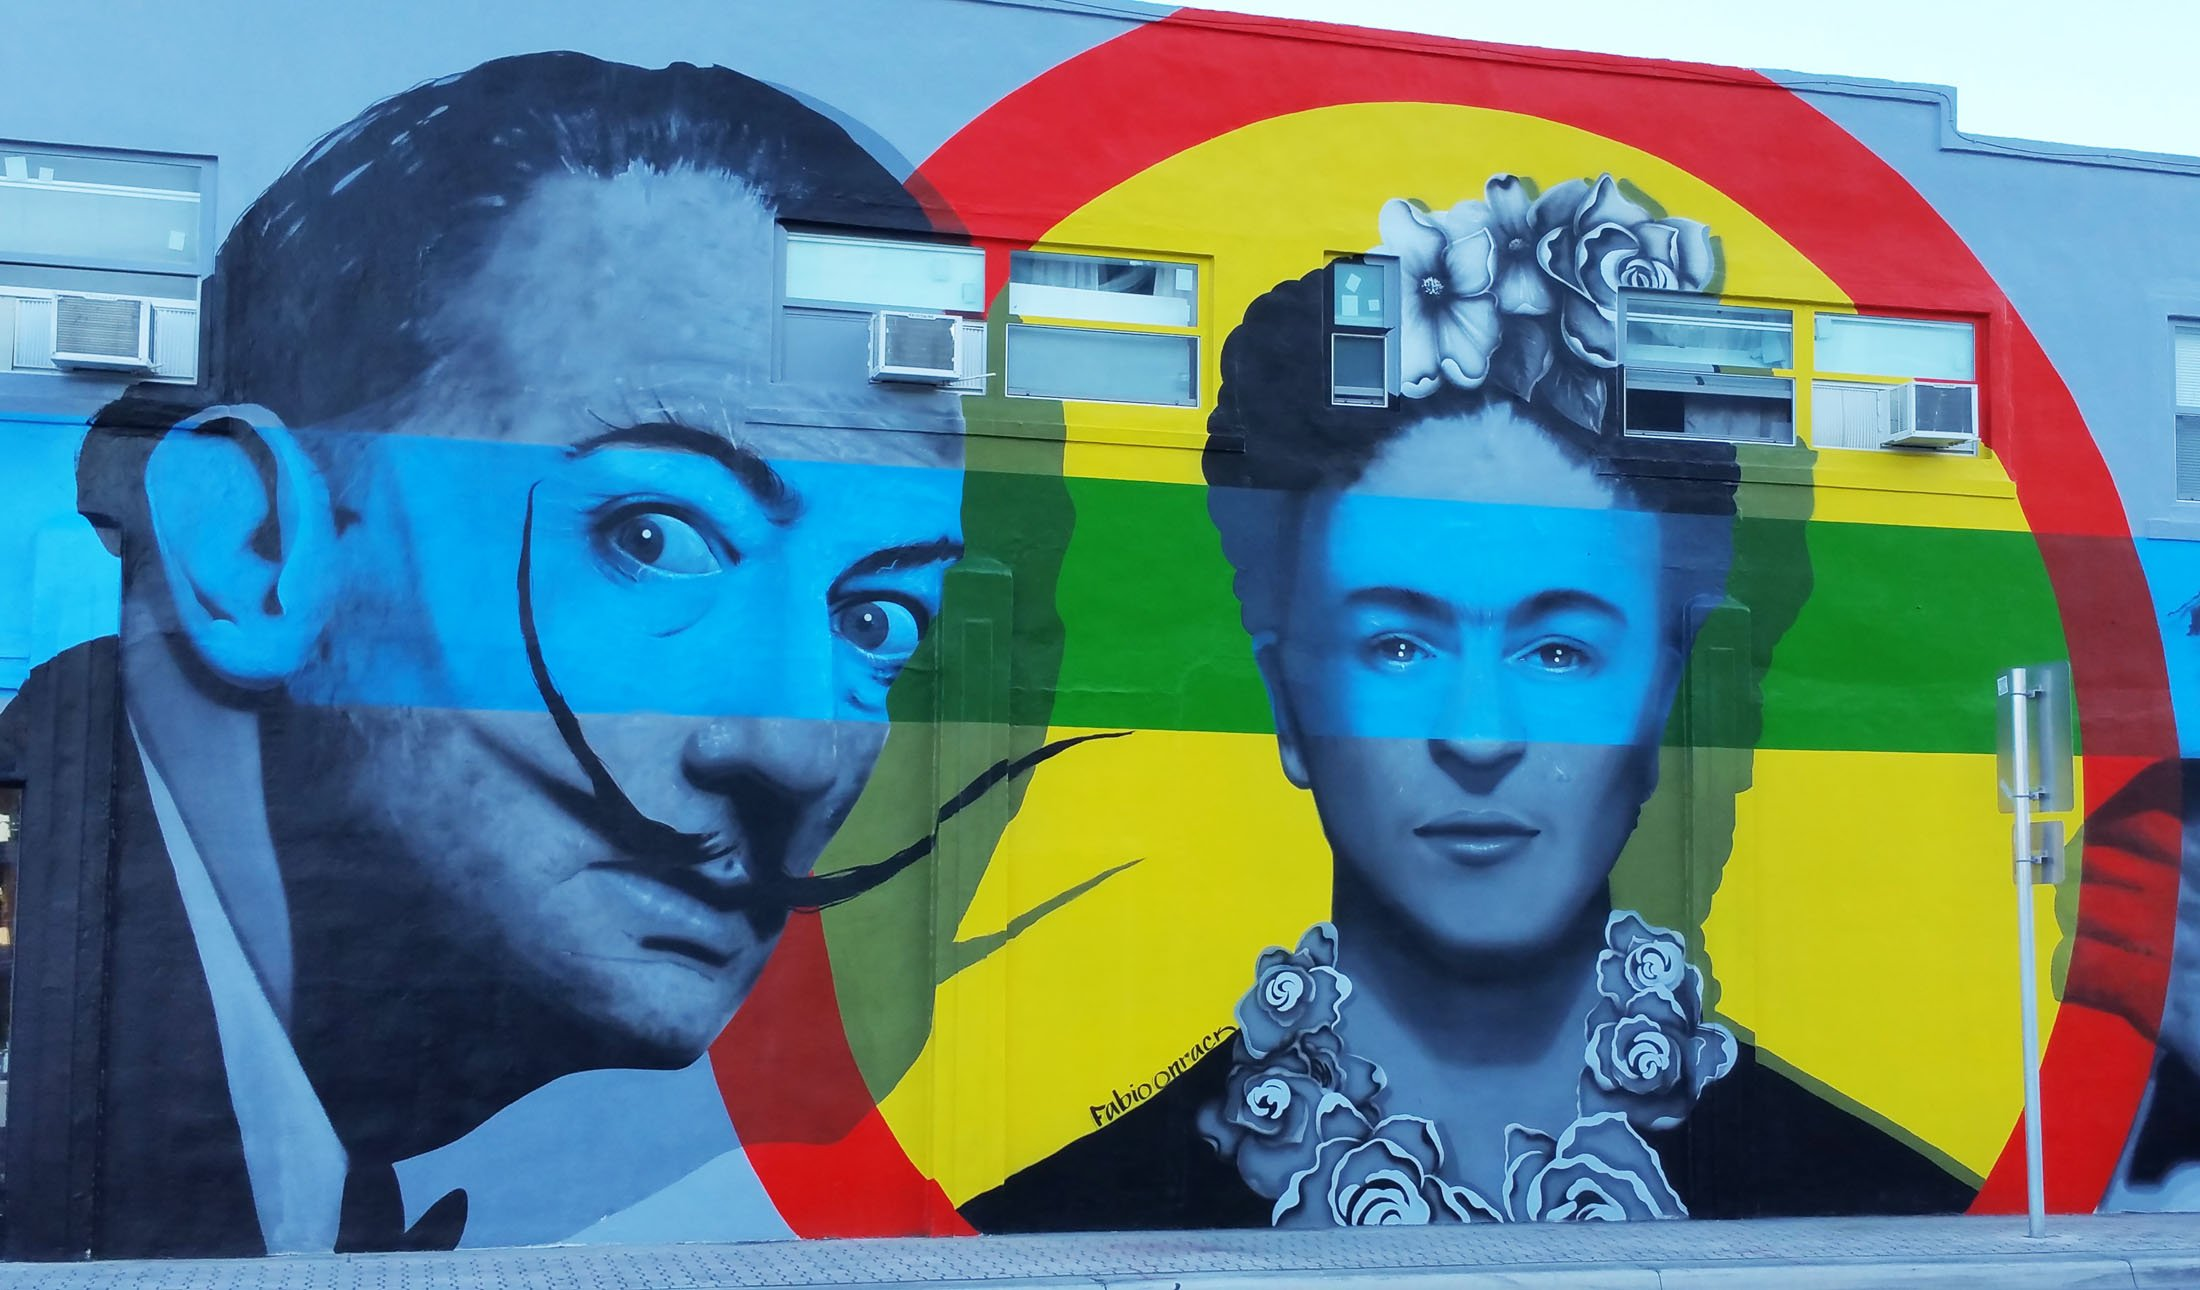 Mural depicting artisits Salvador Dali and Frida Kahlo lend distinction to the Hollywood (Fla.) Downtown Mural Project. (CraigslegzTravels.com)